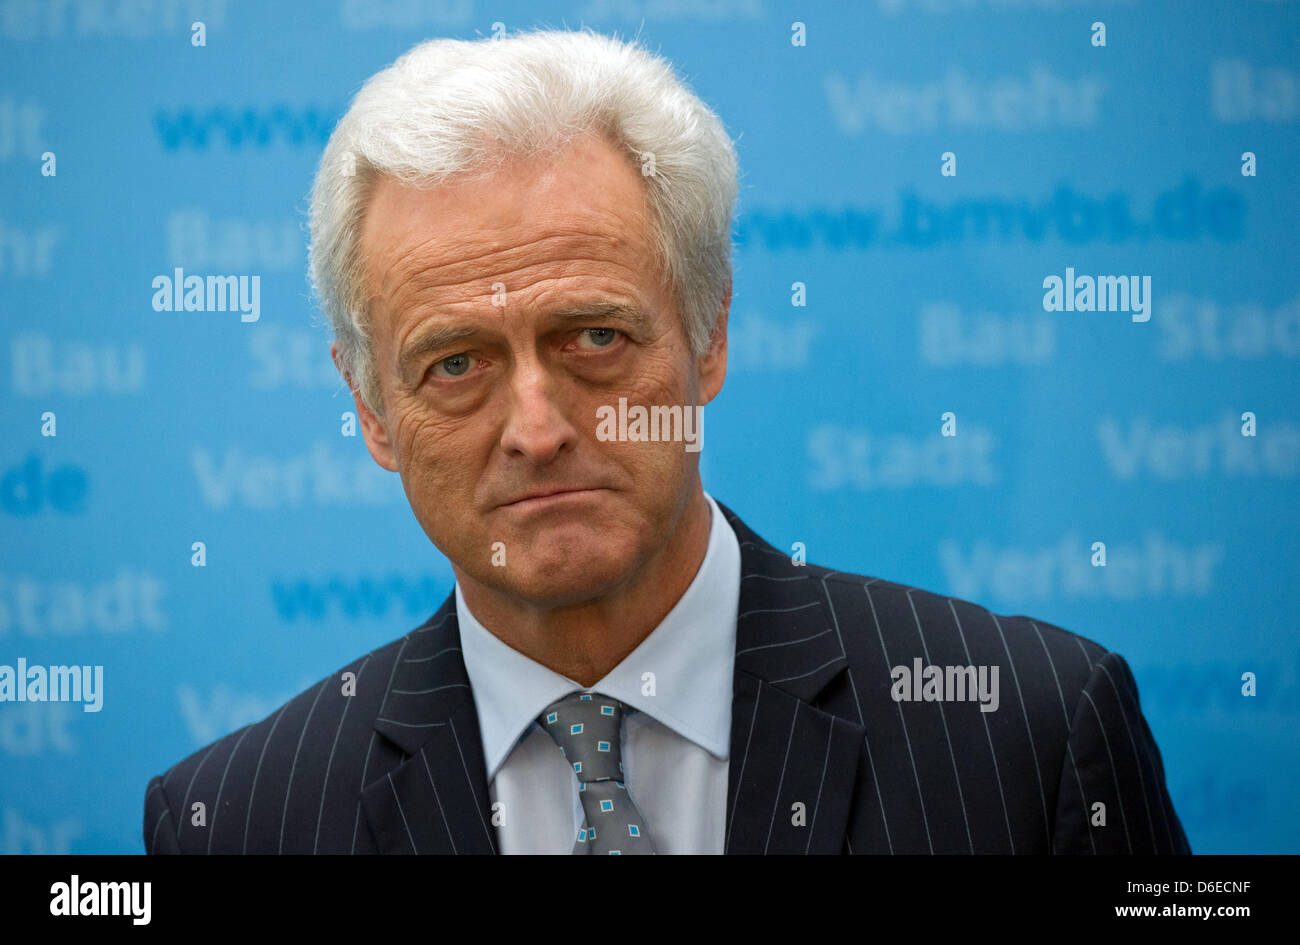 German Minister of Transport, Peter Ramsauer (CSU), gives a press conference at the German Ministry of Transport - Stock Image